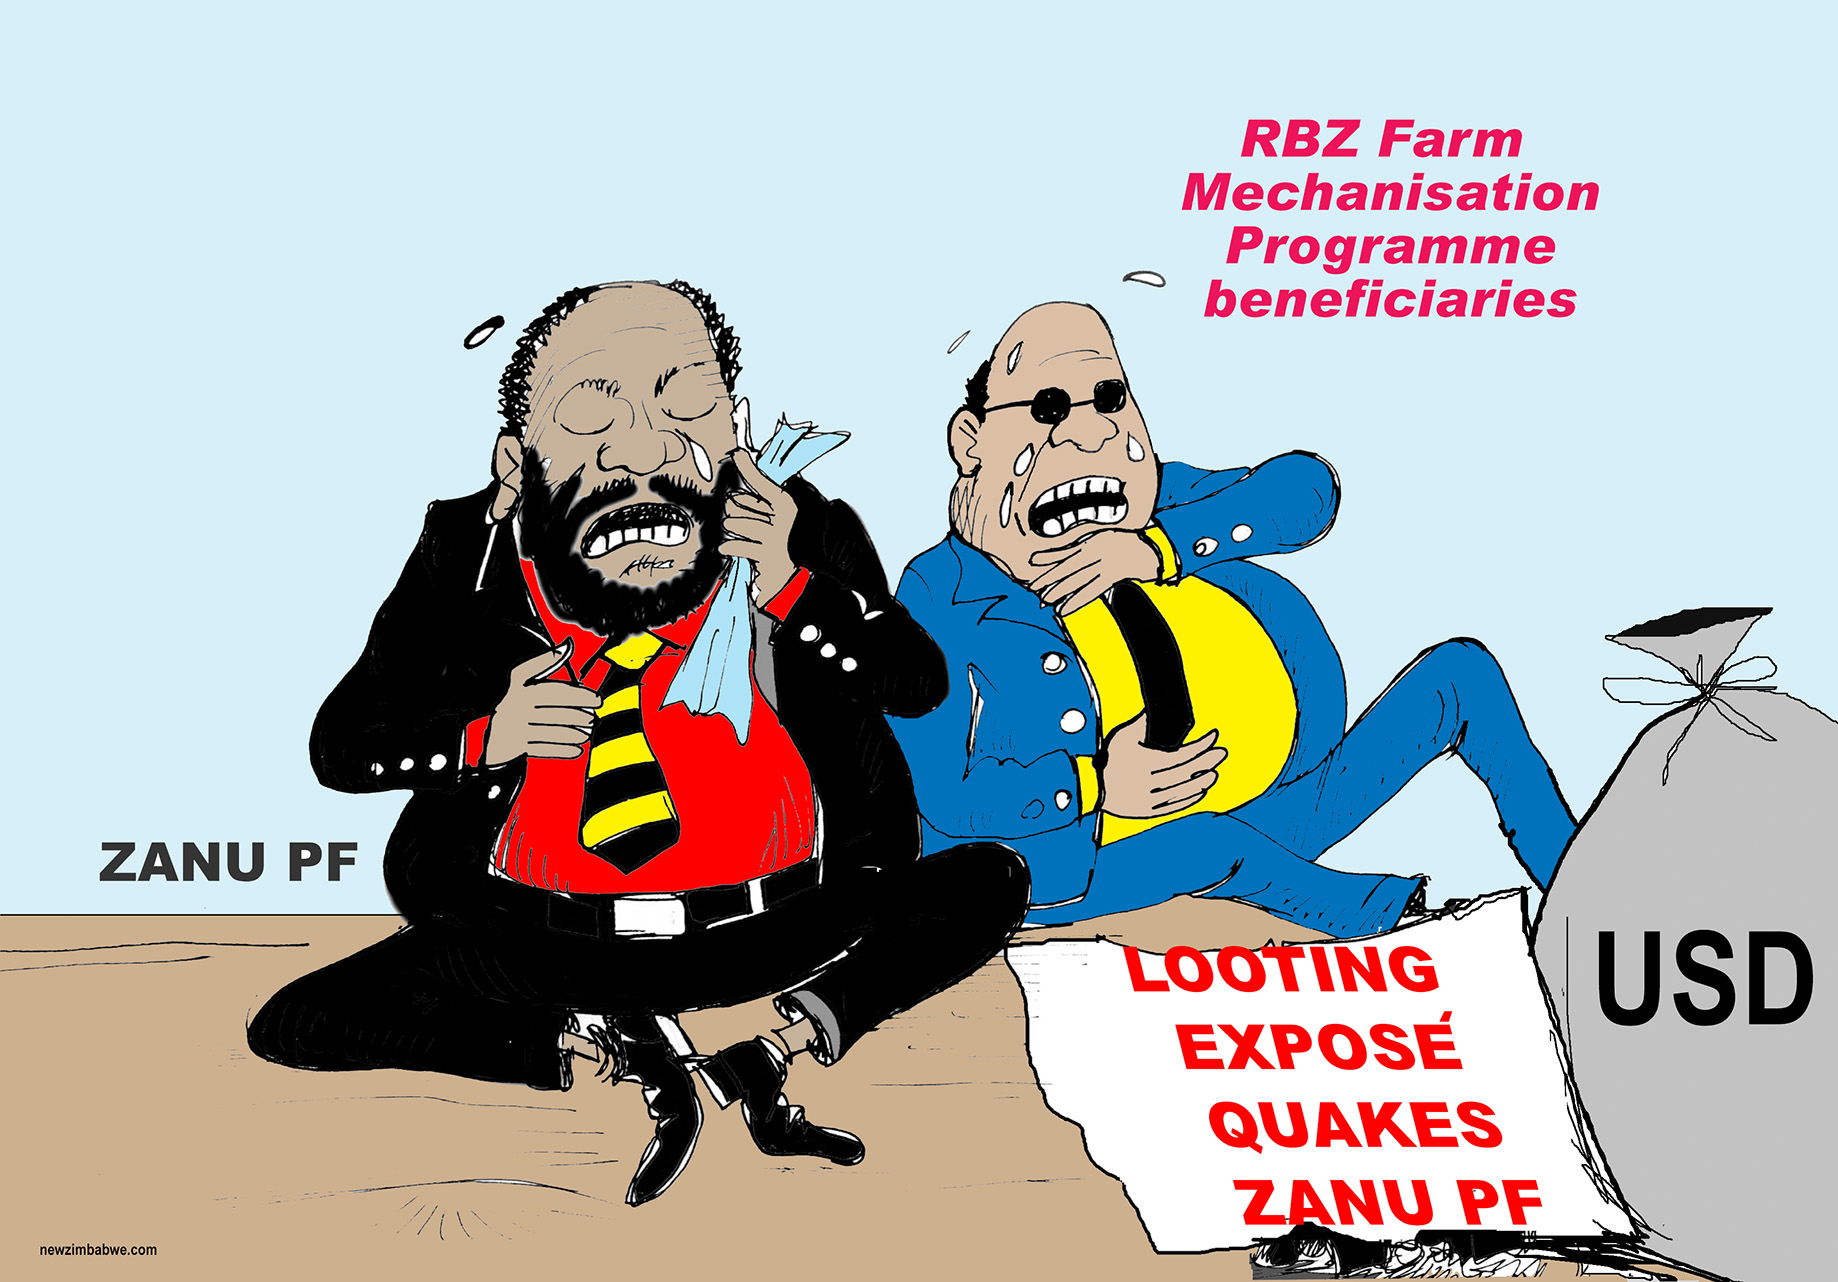 Of farm mechanisation programme and looters